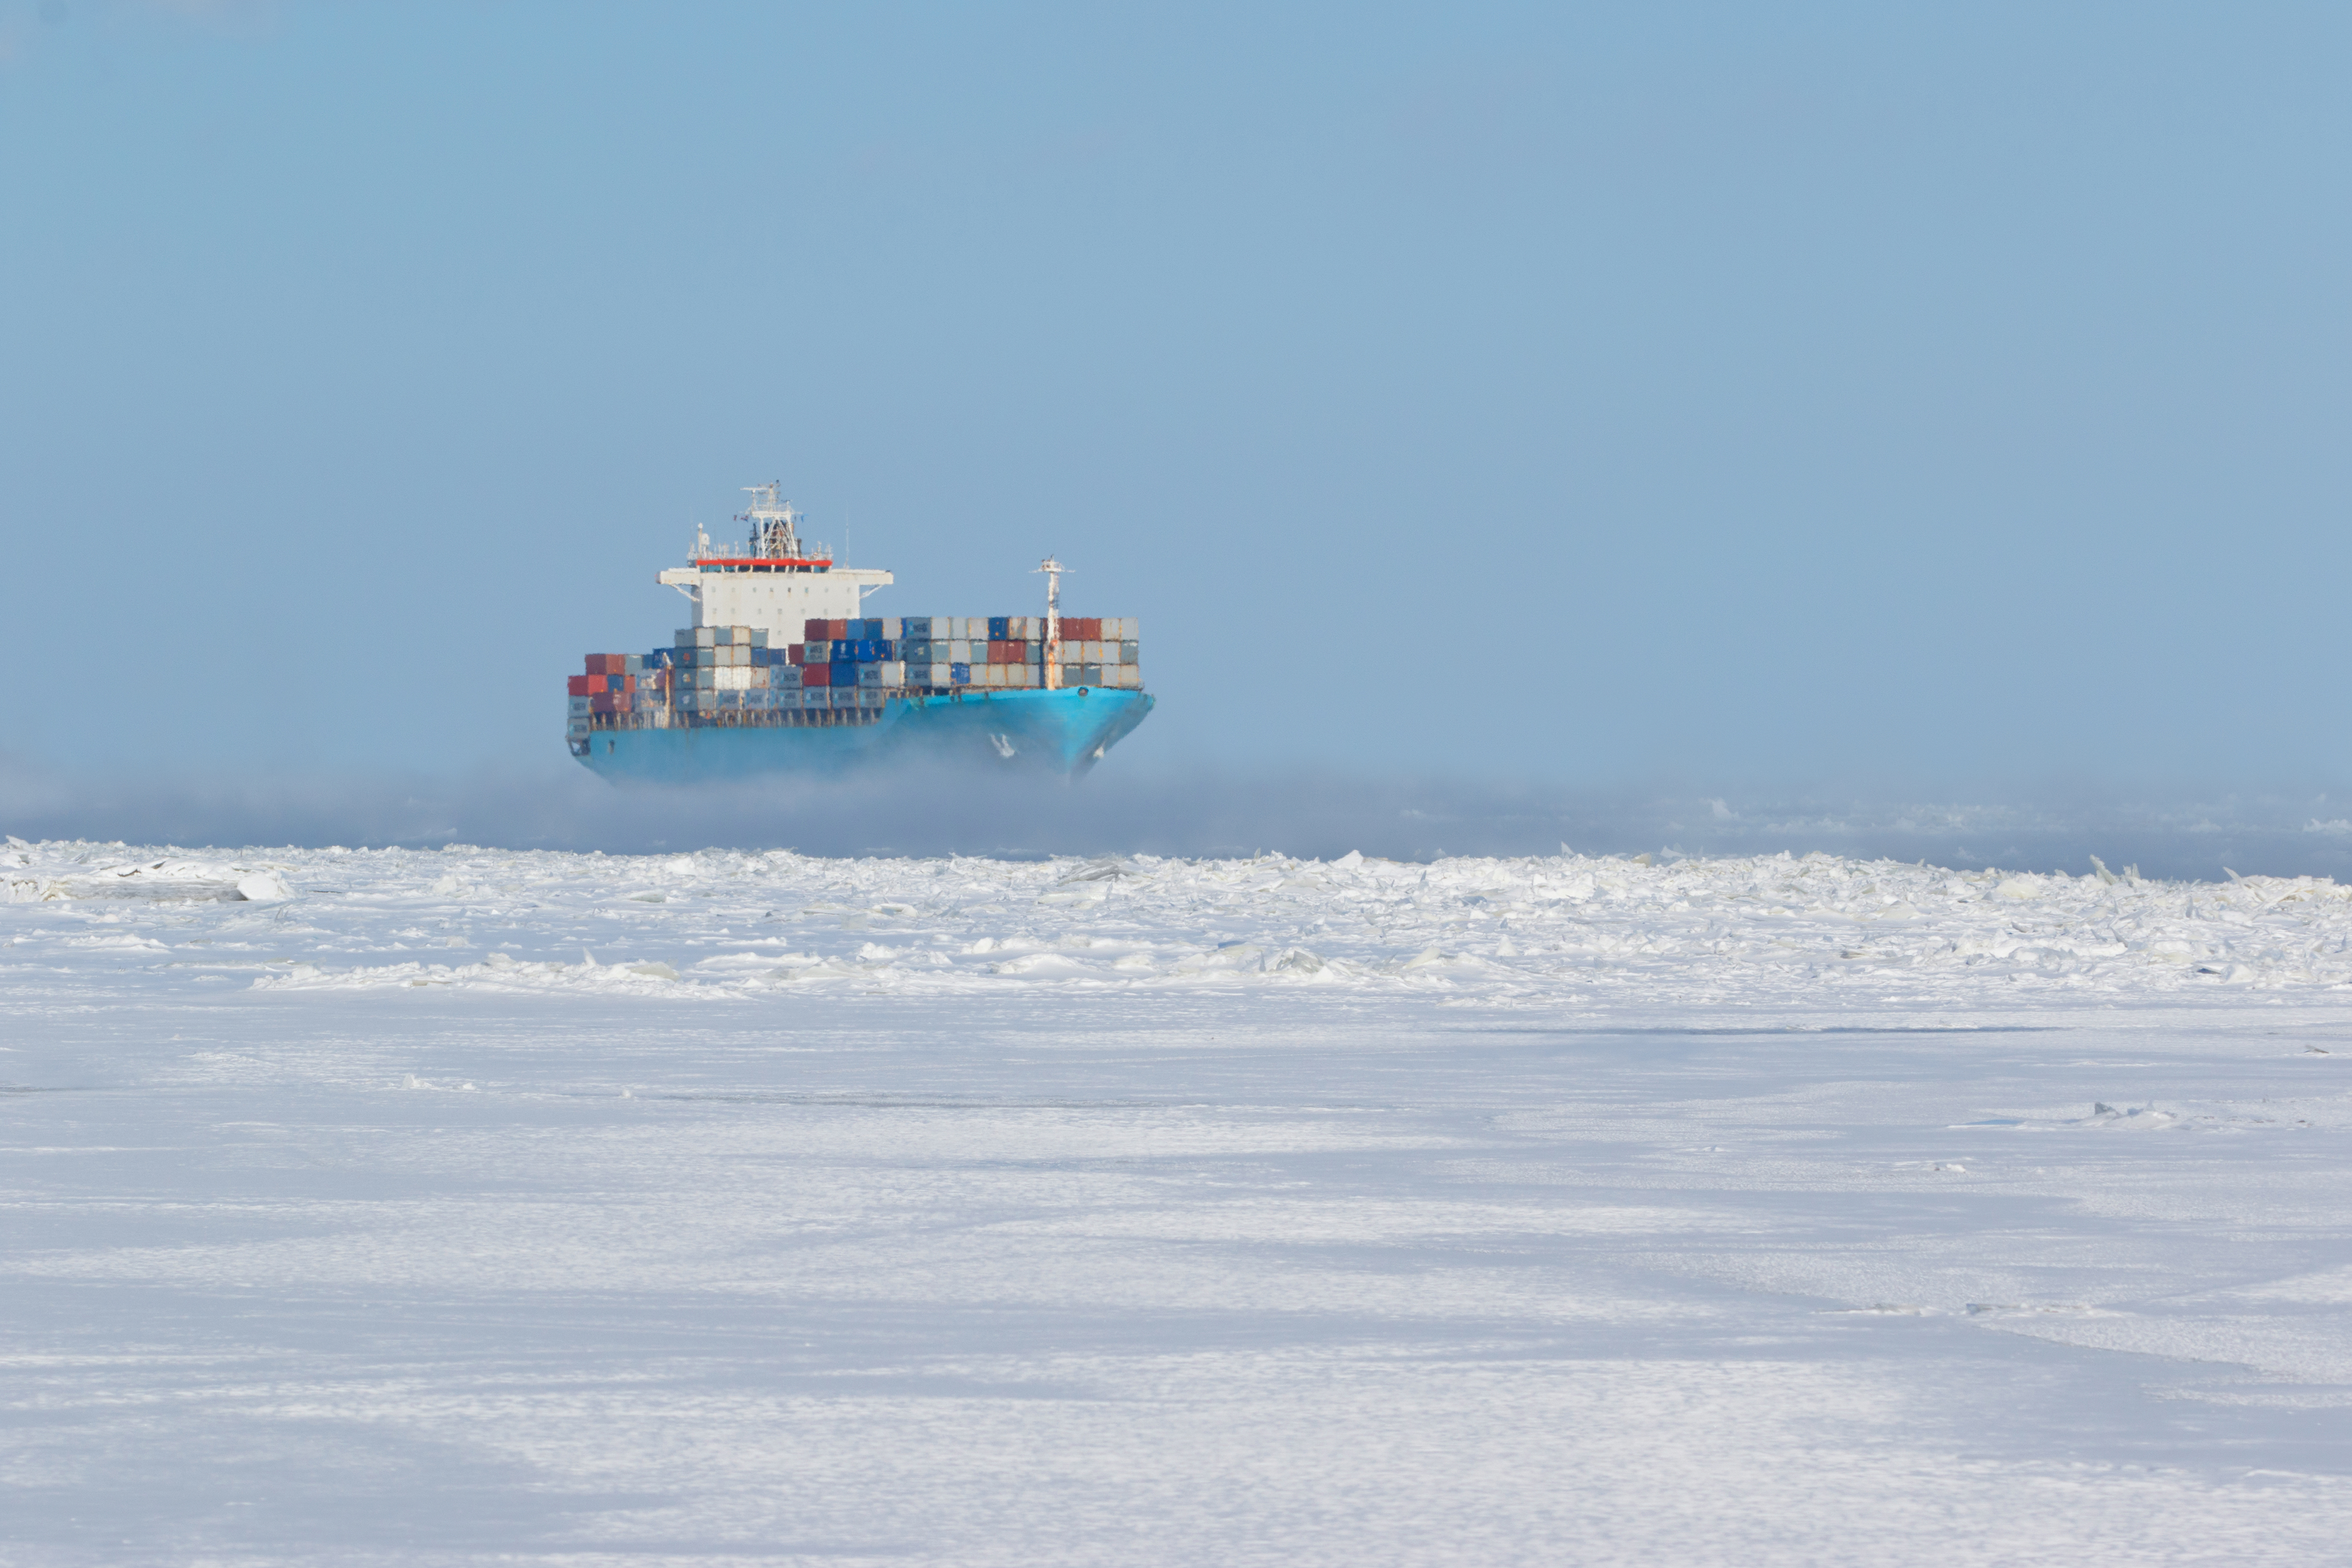 Large cargo filled with containers navigating through ice-surrounded passage. (Getty Images)